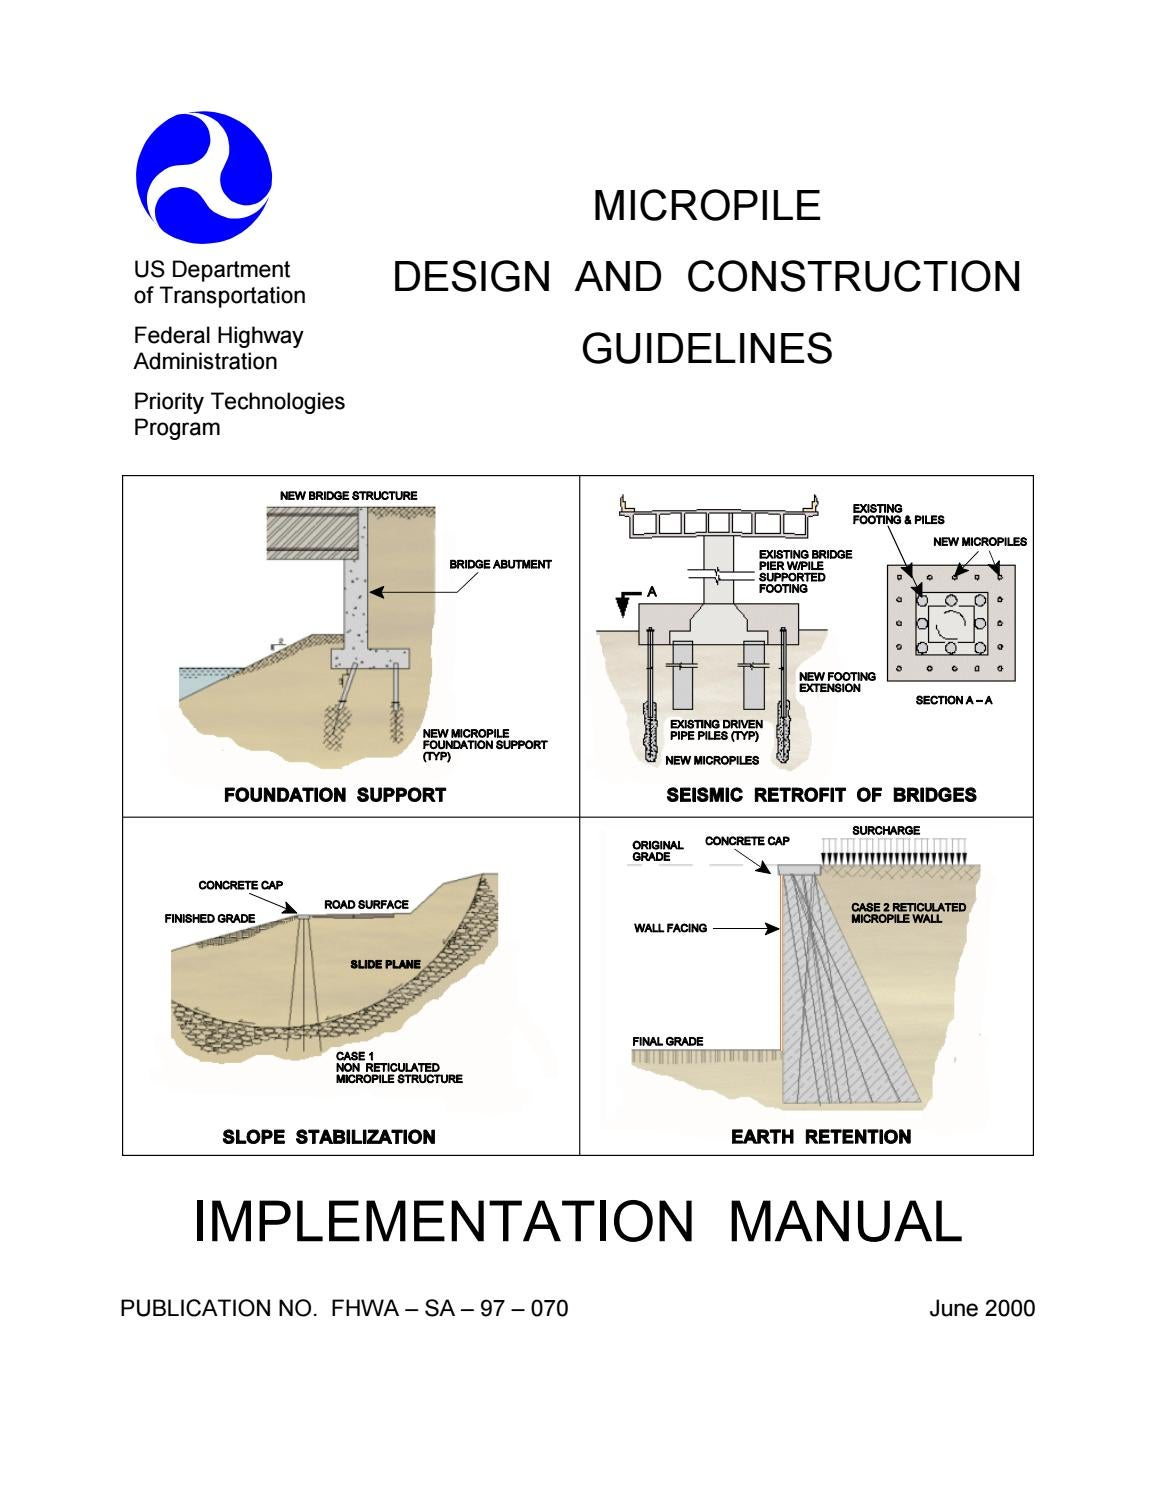 Federal Highway Administration (Fhwa) micropilie design and